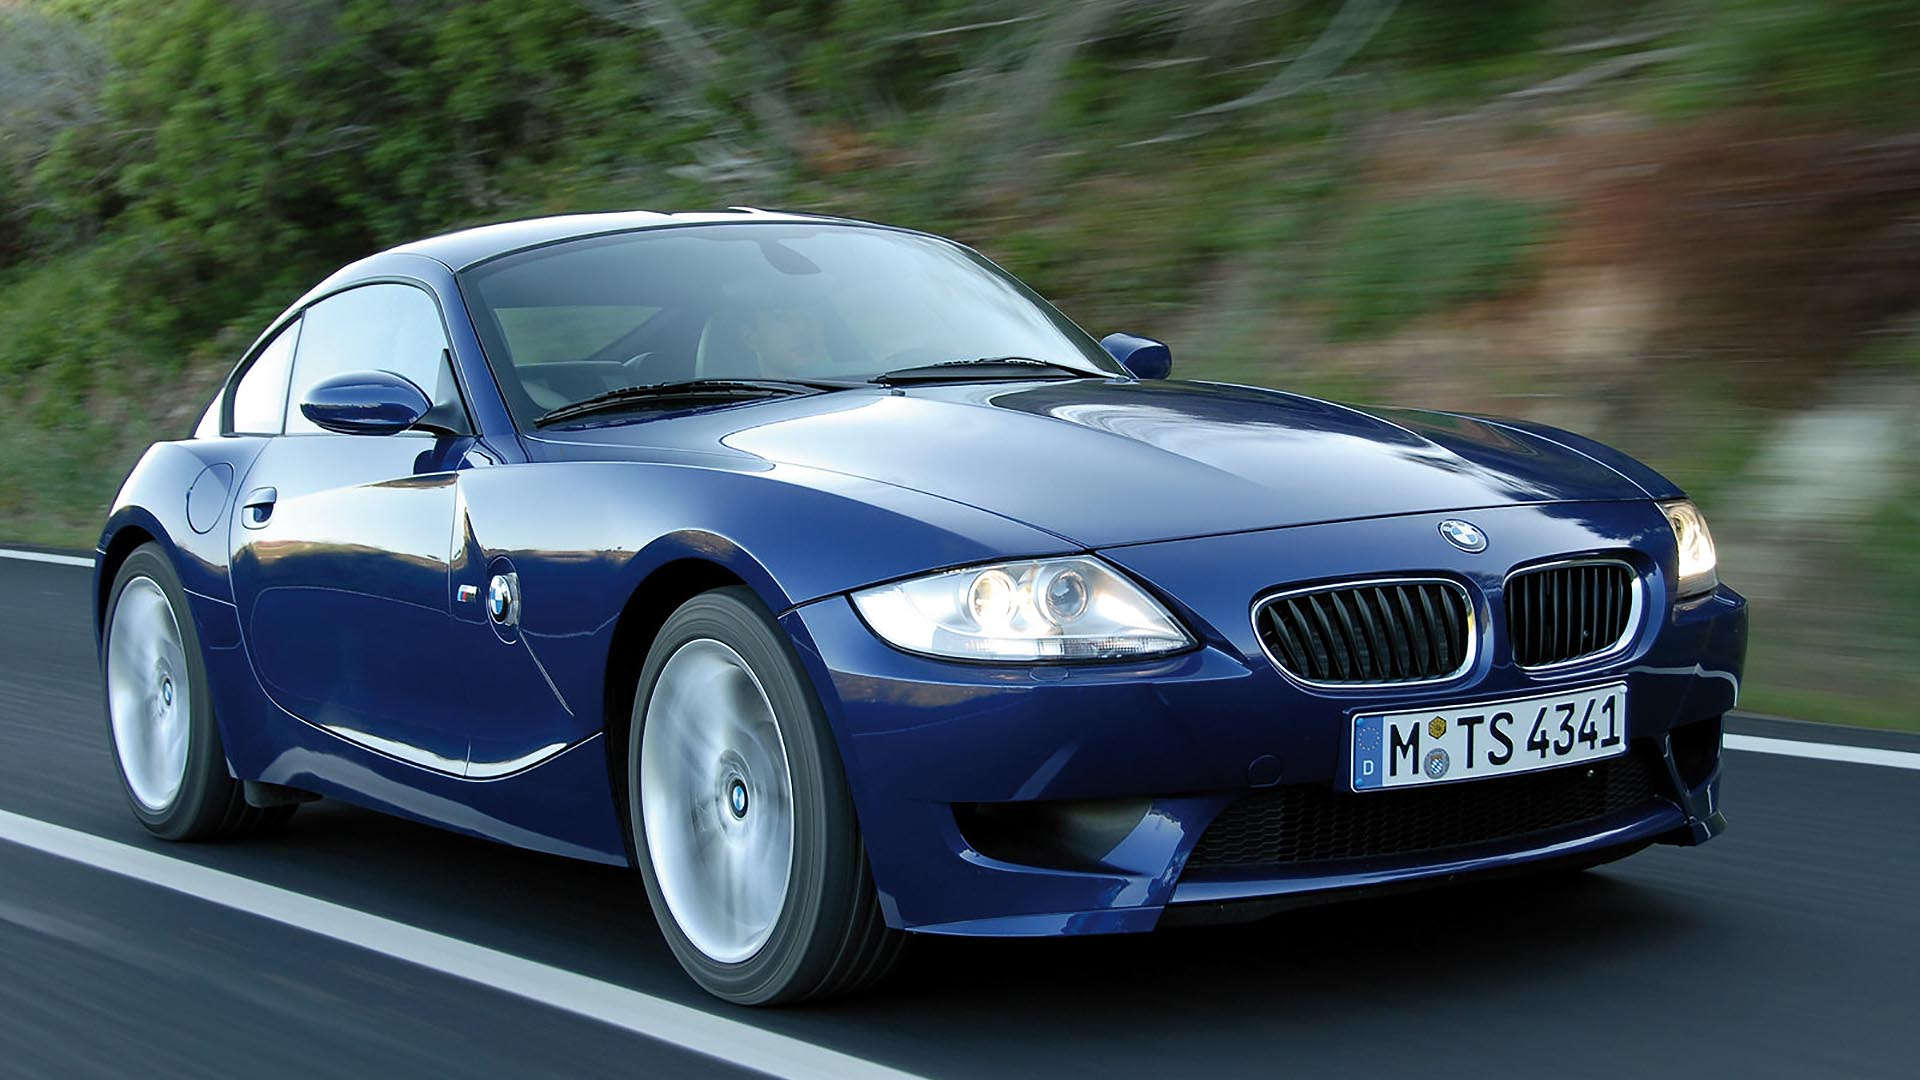 5 European Cars That Missed The Mark